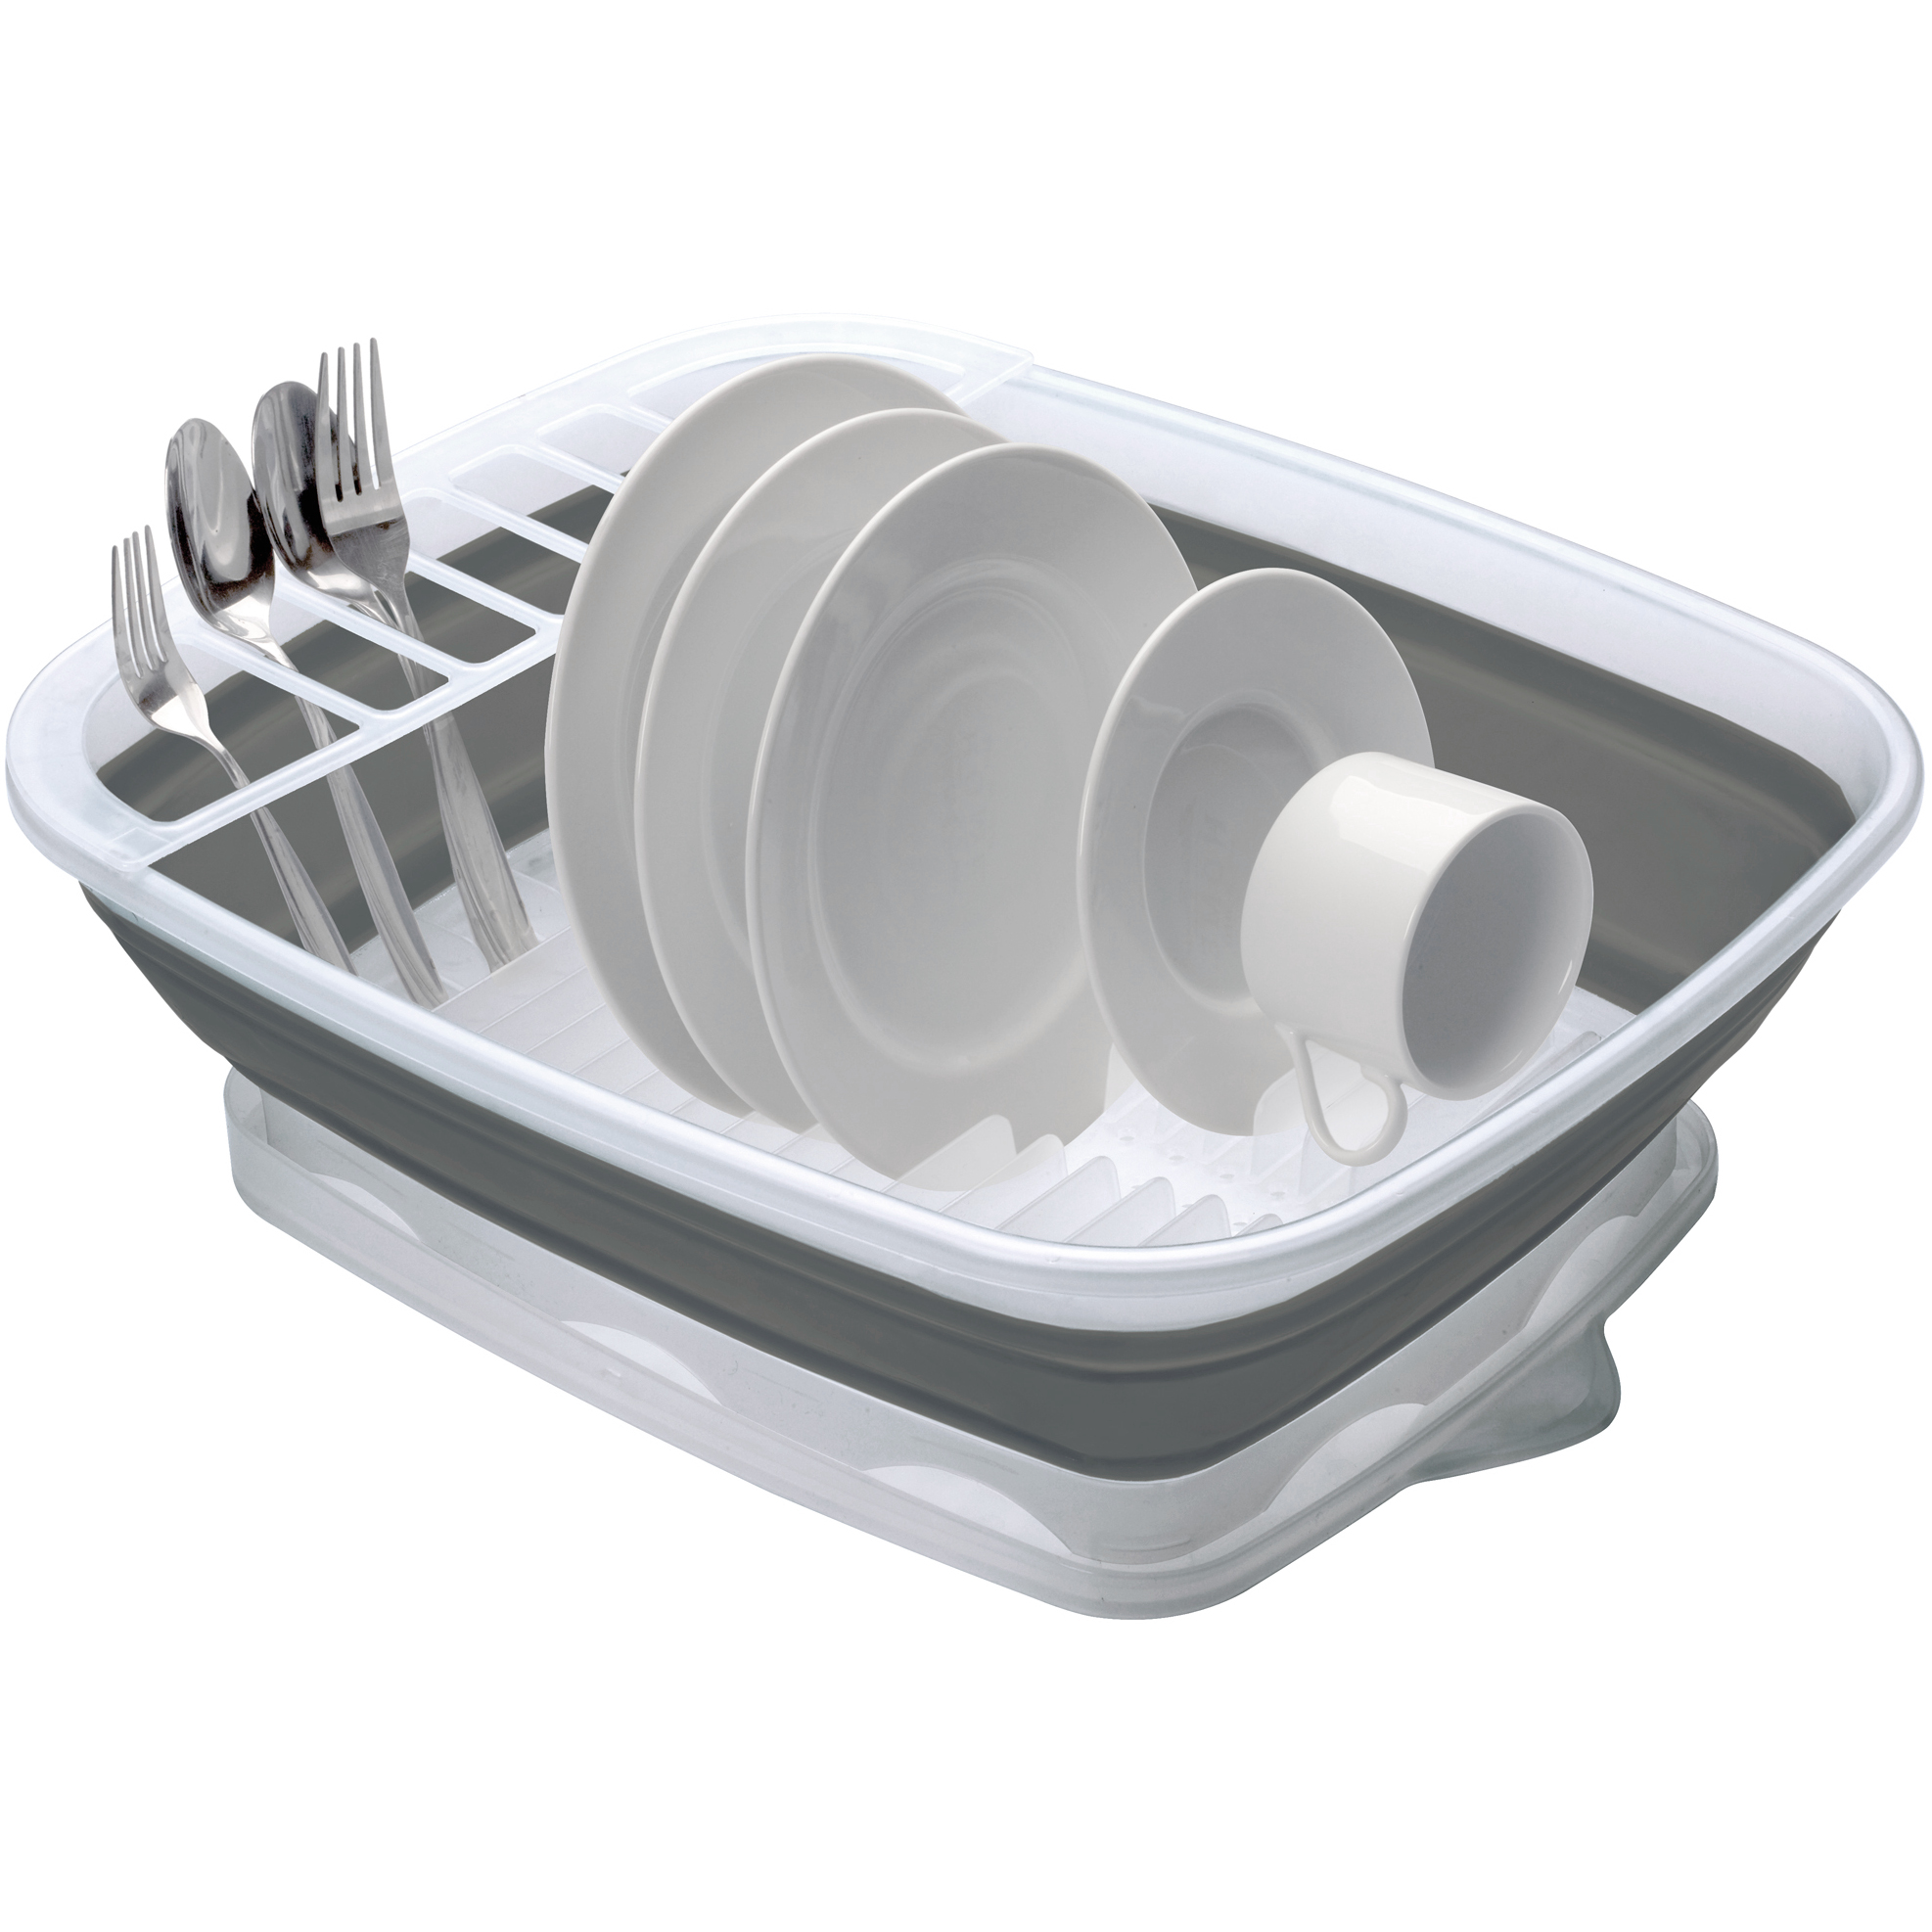 Progressive International Grey and White Collapsible Dish Rack